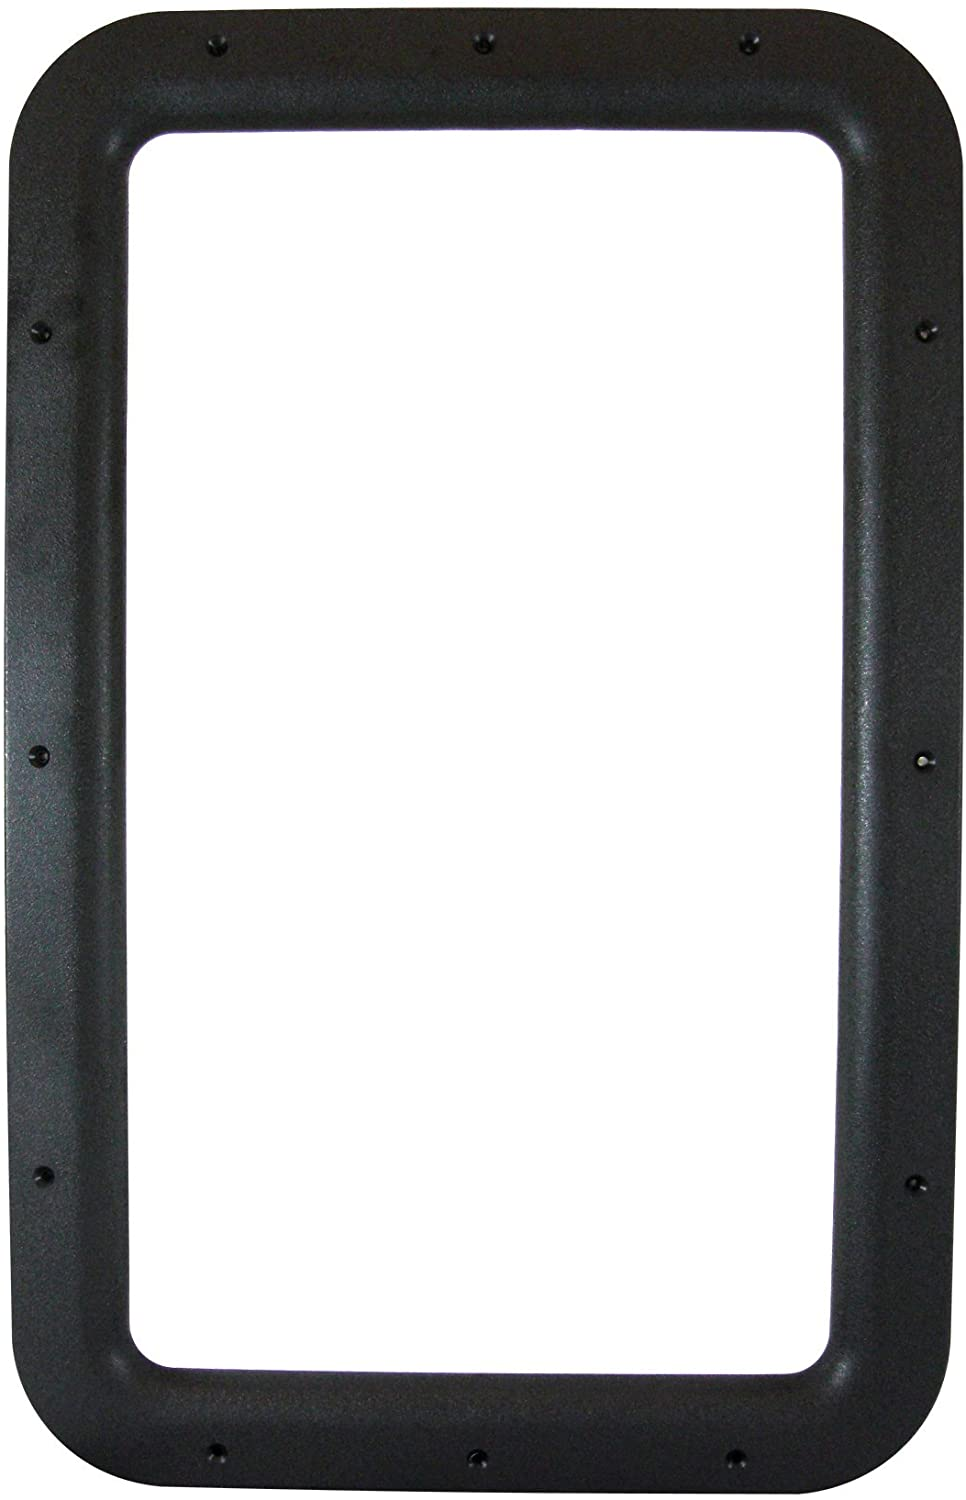 Valterra A77012 Interior Entrance Door Window Frame - Black